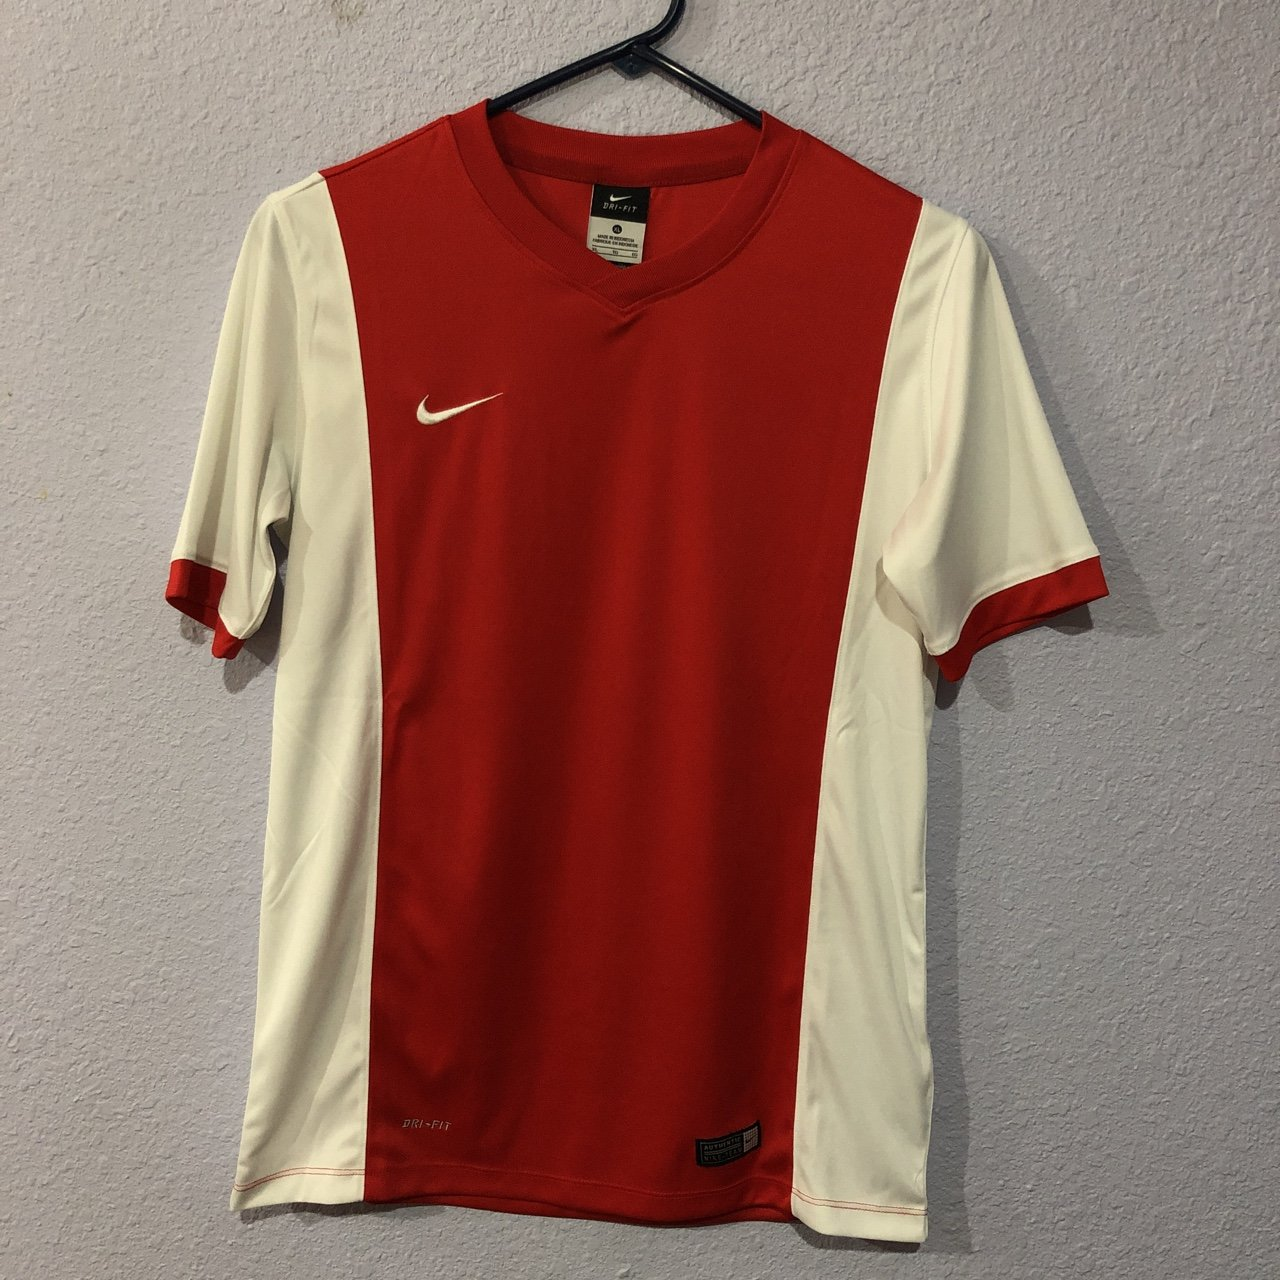 c7c108e56 Nike Soccer Jersey (Red White) It is actually a boys size it - Depop